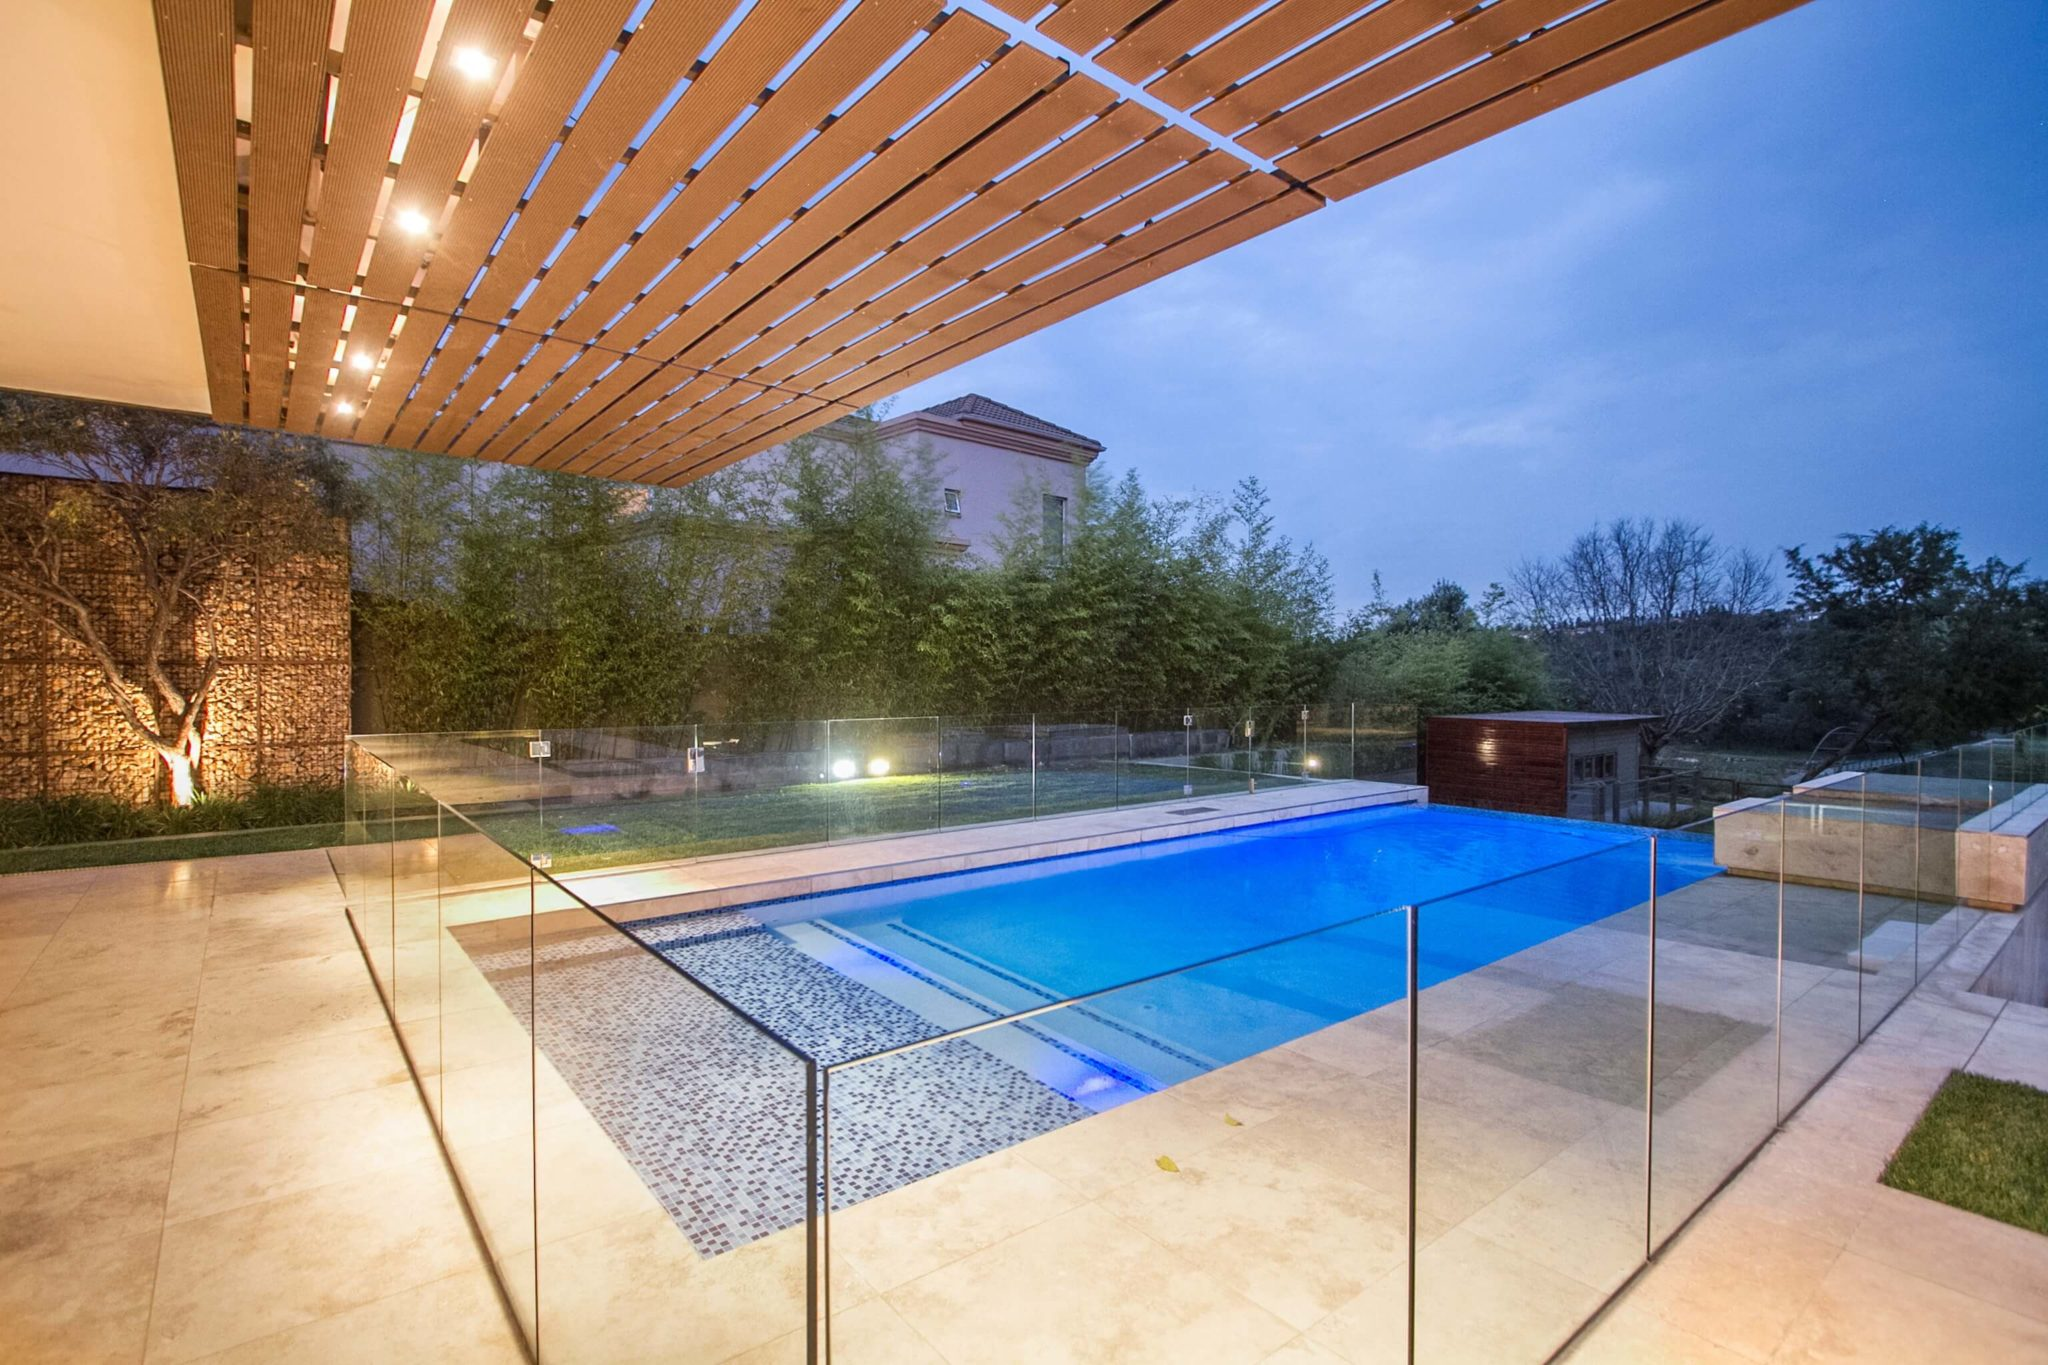 frameless glass pool enclosure